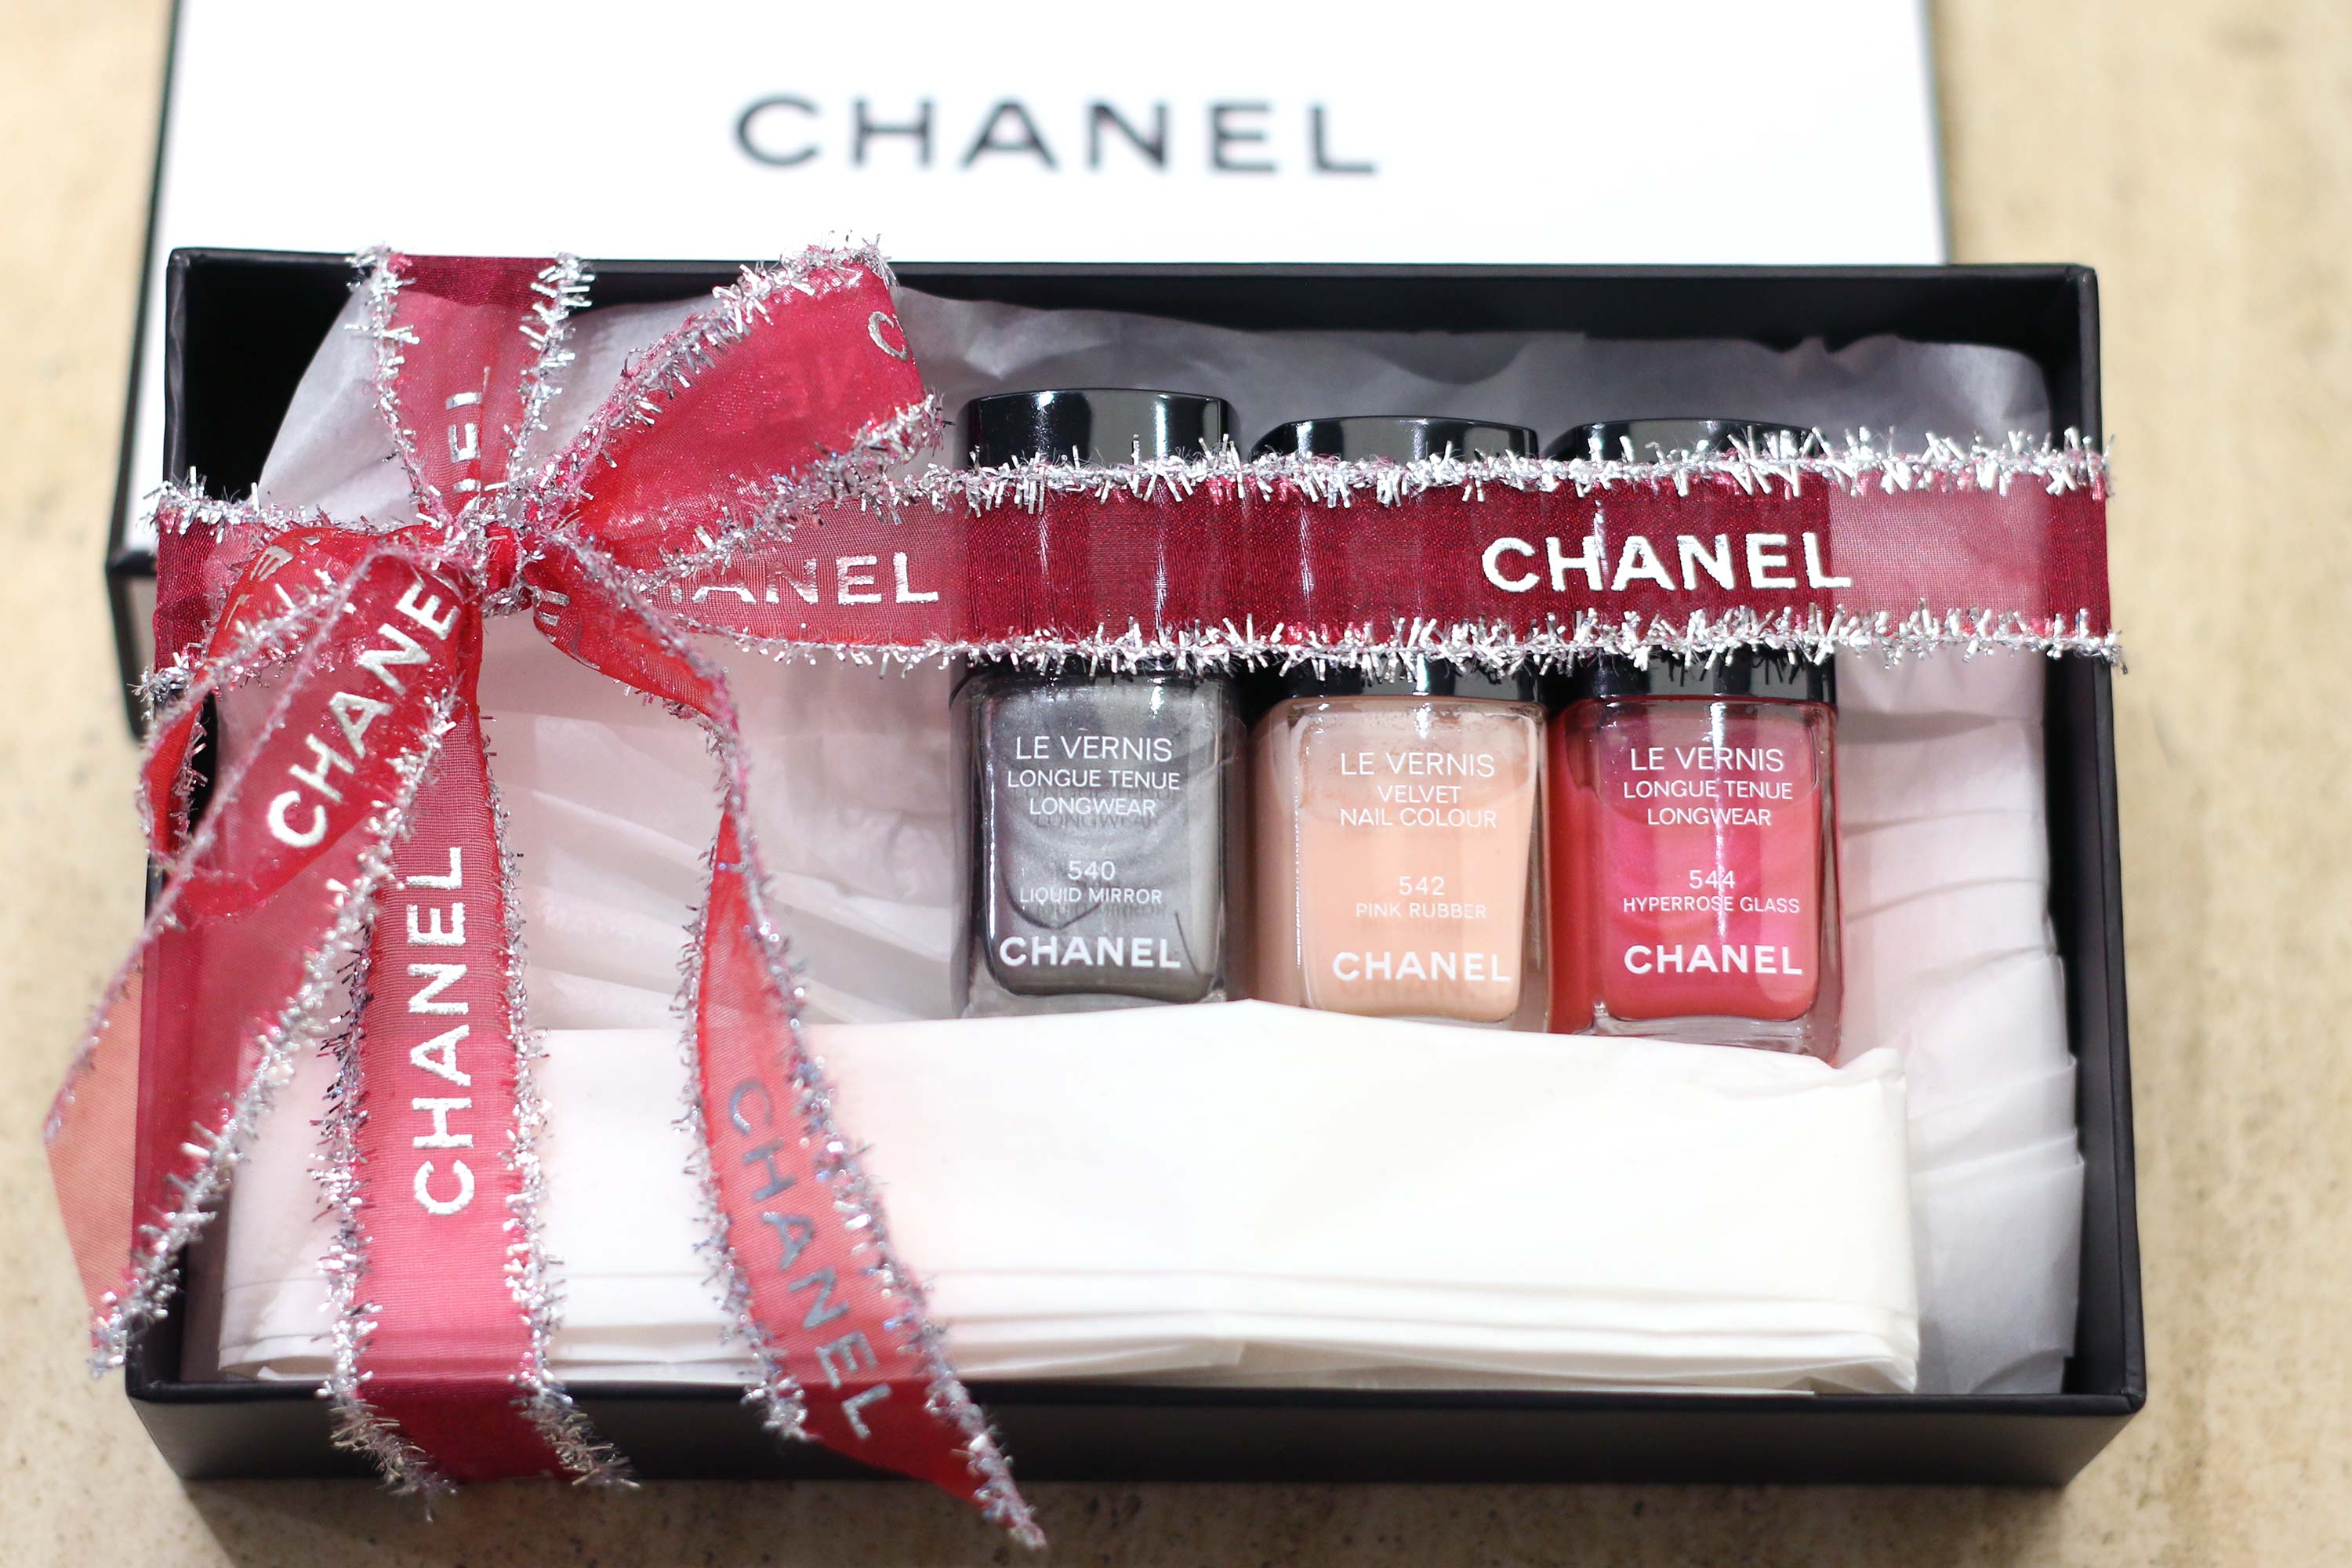 chanel-beauty-boutique-hamburg-18